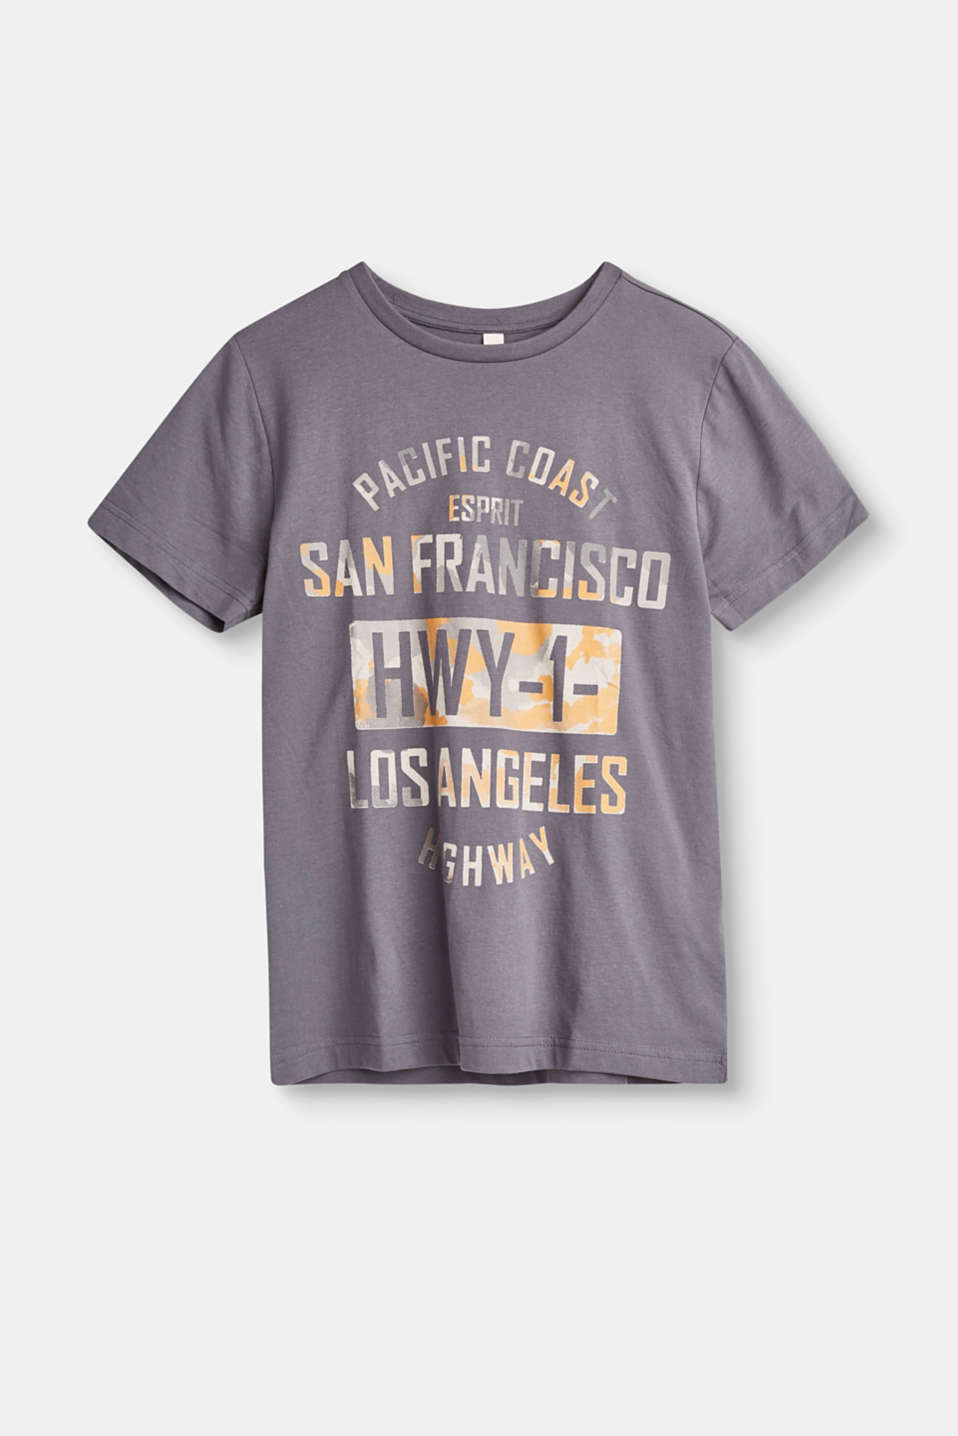 Greetings from California! This cotton T-shirt with a statement print flies the flag for the Pacific coast.